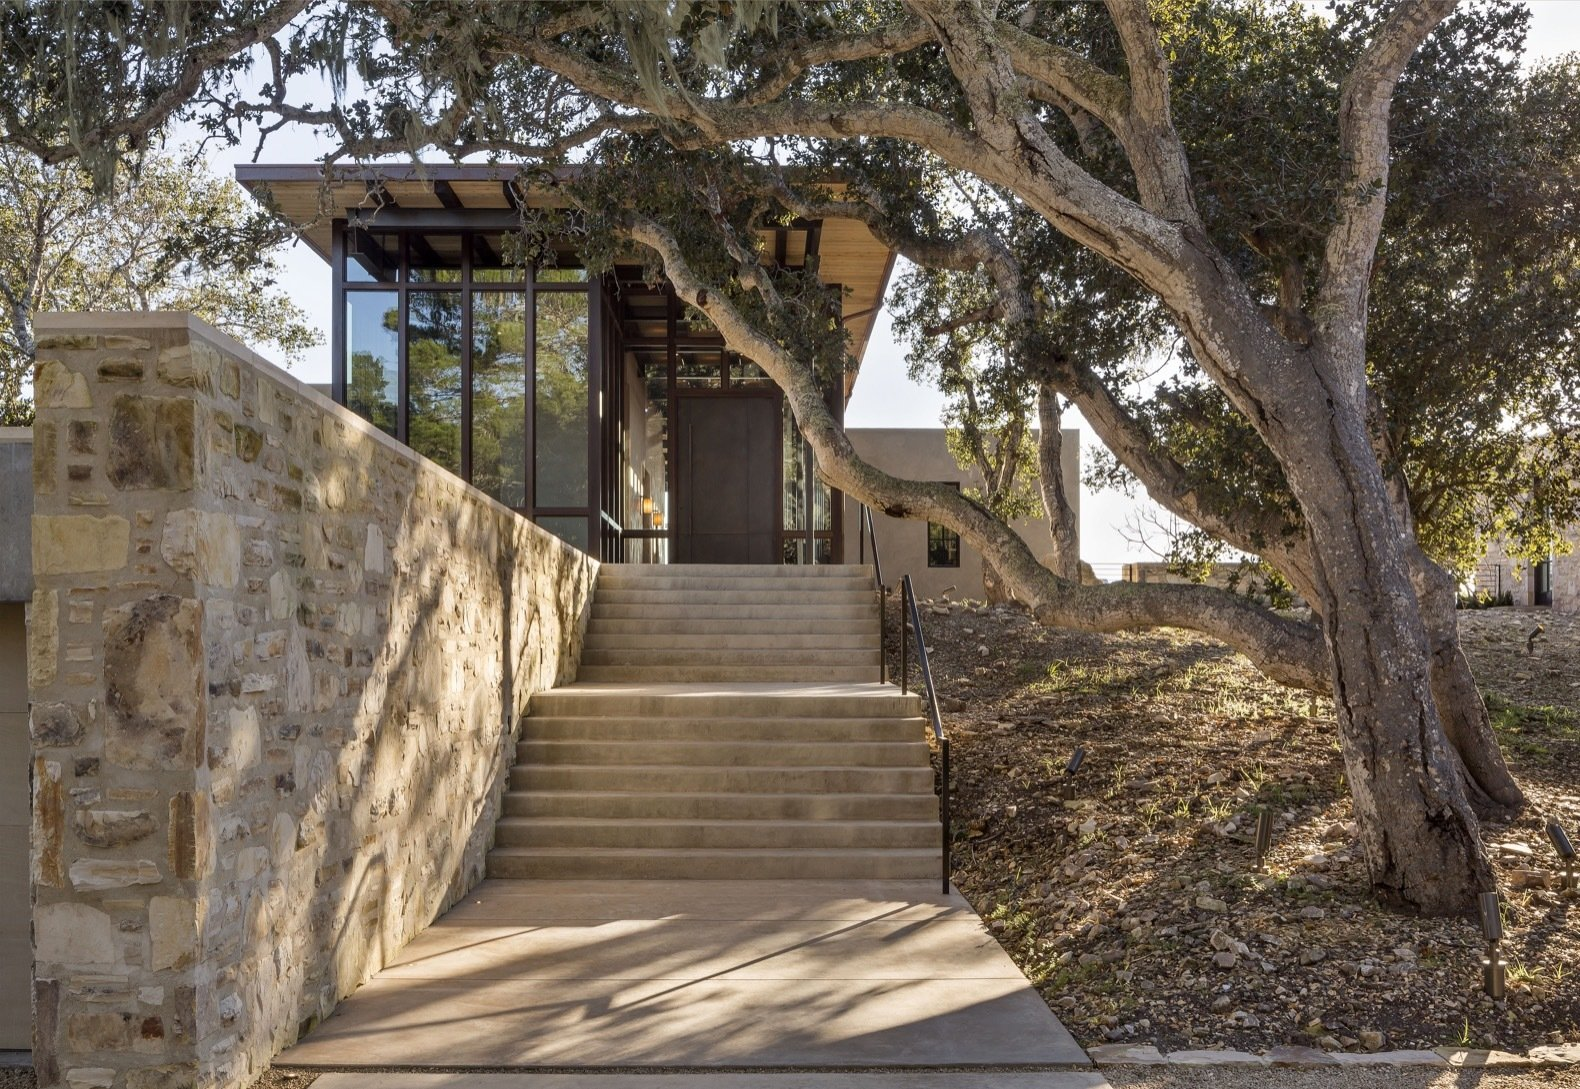 Exterior, Metal Siding Material, Concrete Siding Material, House Building Type, Flat RoofLine, and Glass Siding Material Stone walls, made with rock excavated on site, frame the ascent with cement steps.  Photos from Glass and Stone Combine to Dazzling Effect on California's Central Coast